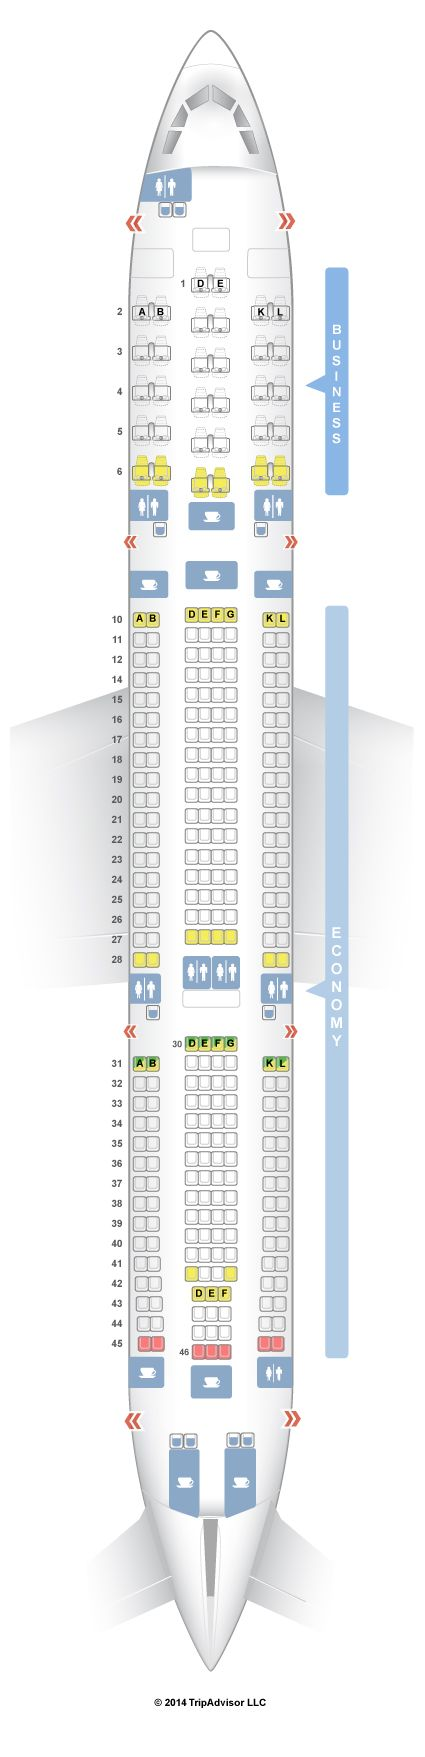 SeatGuru Seat Map Air Tahiti Nui Airbus A340-300 (343)